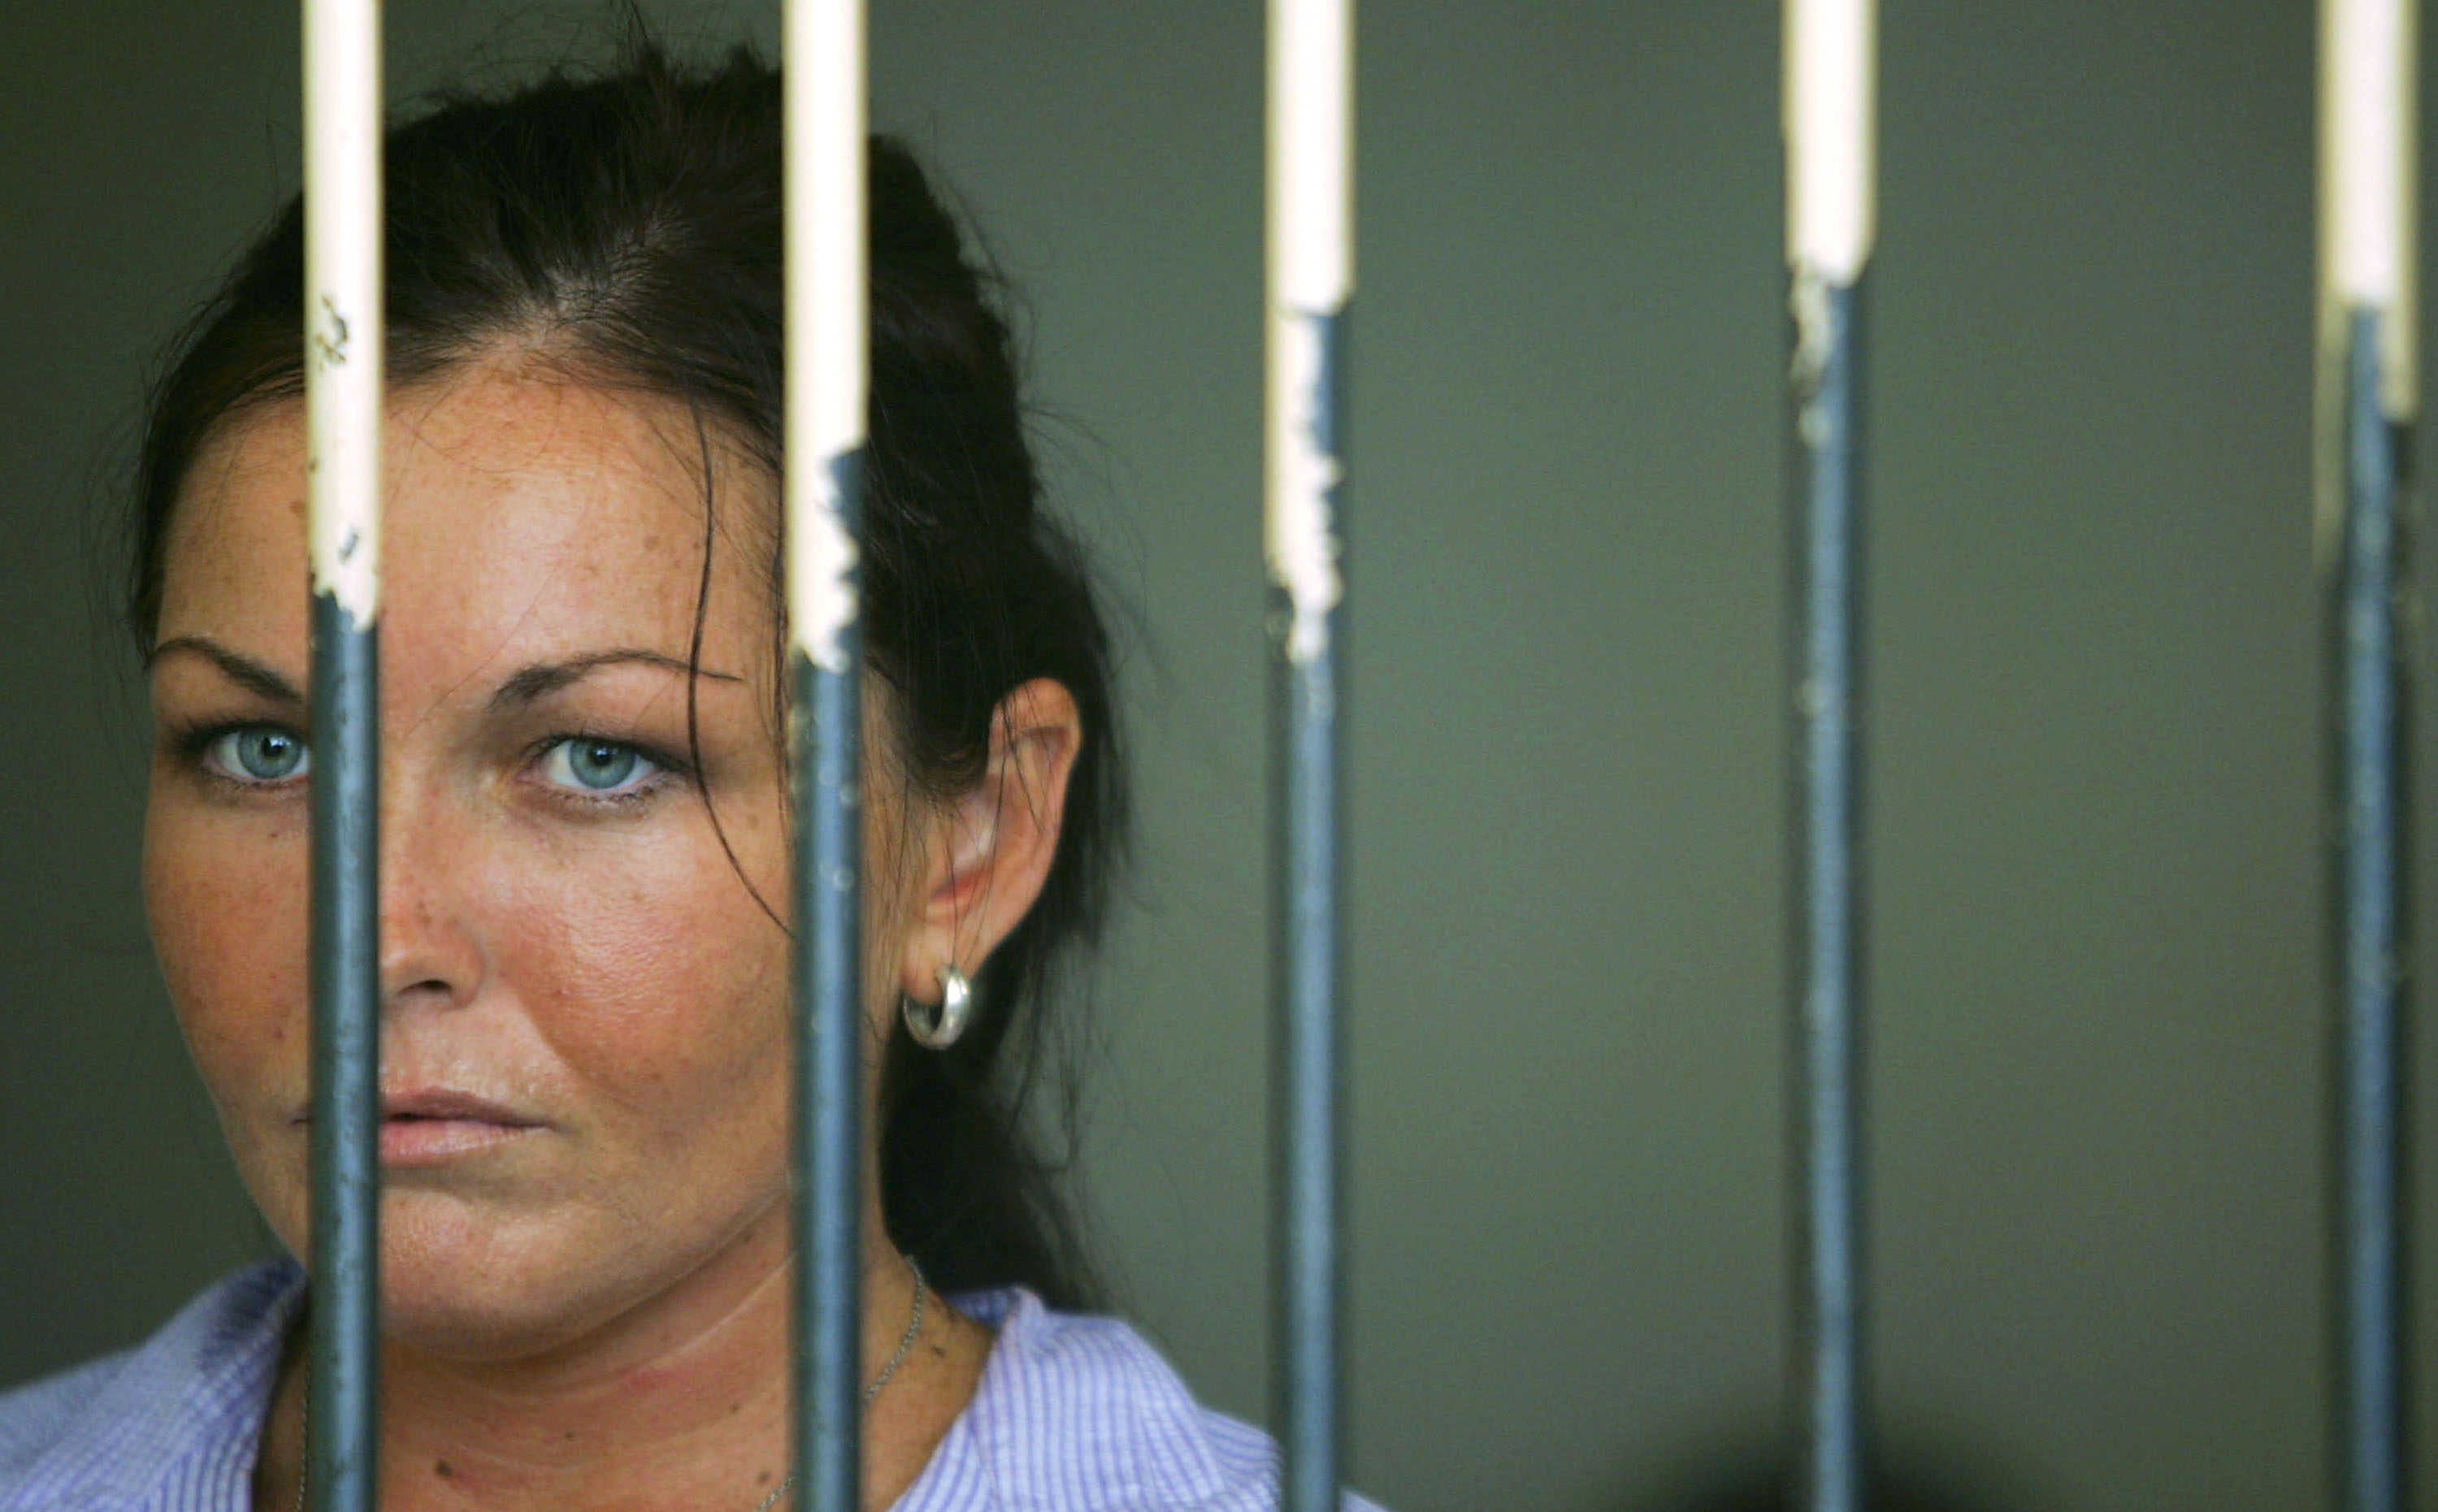 Schapelle Corby waits in her cell before her trial on April 28, 2005 at Denpasar Court, Bali, Indonesia.